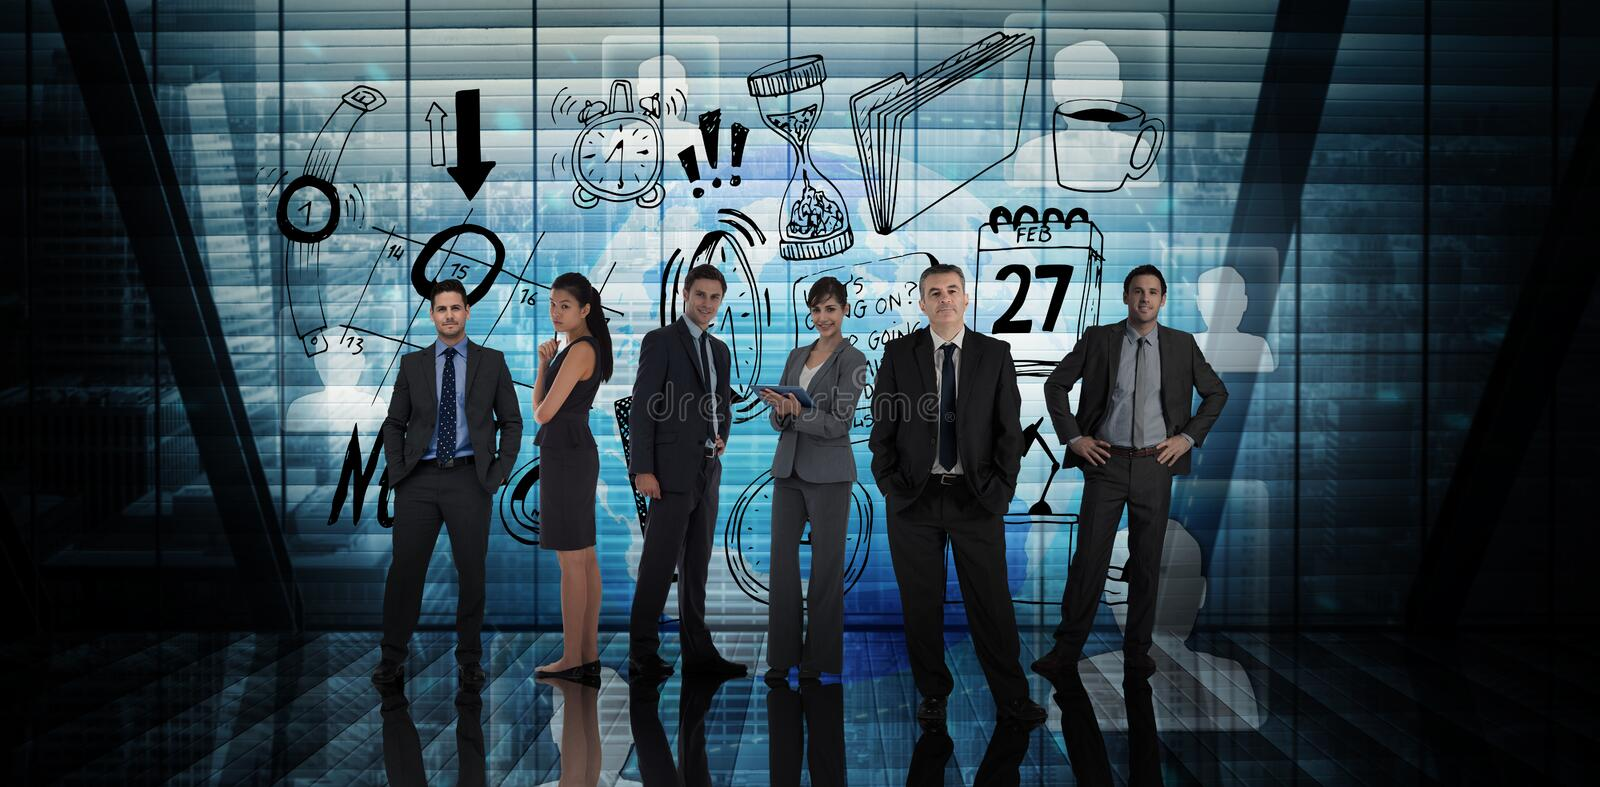 Composite image of business people. Business people against futuristic technology interface royalty free stock photo